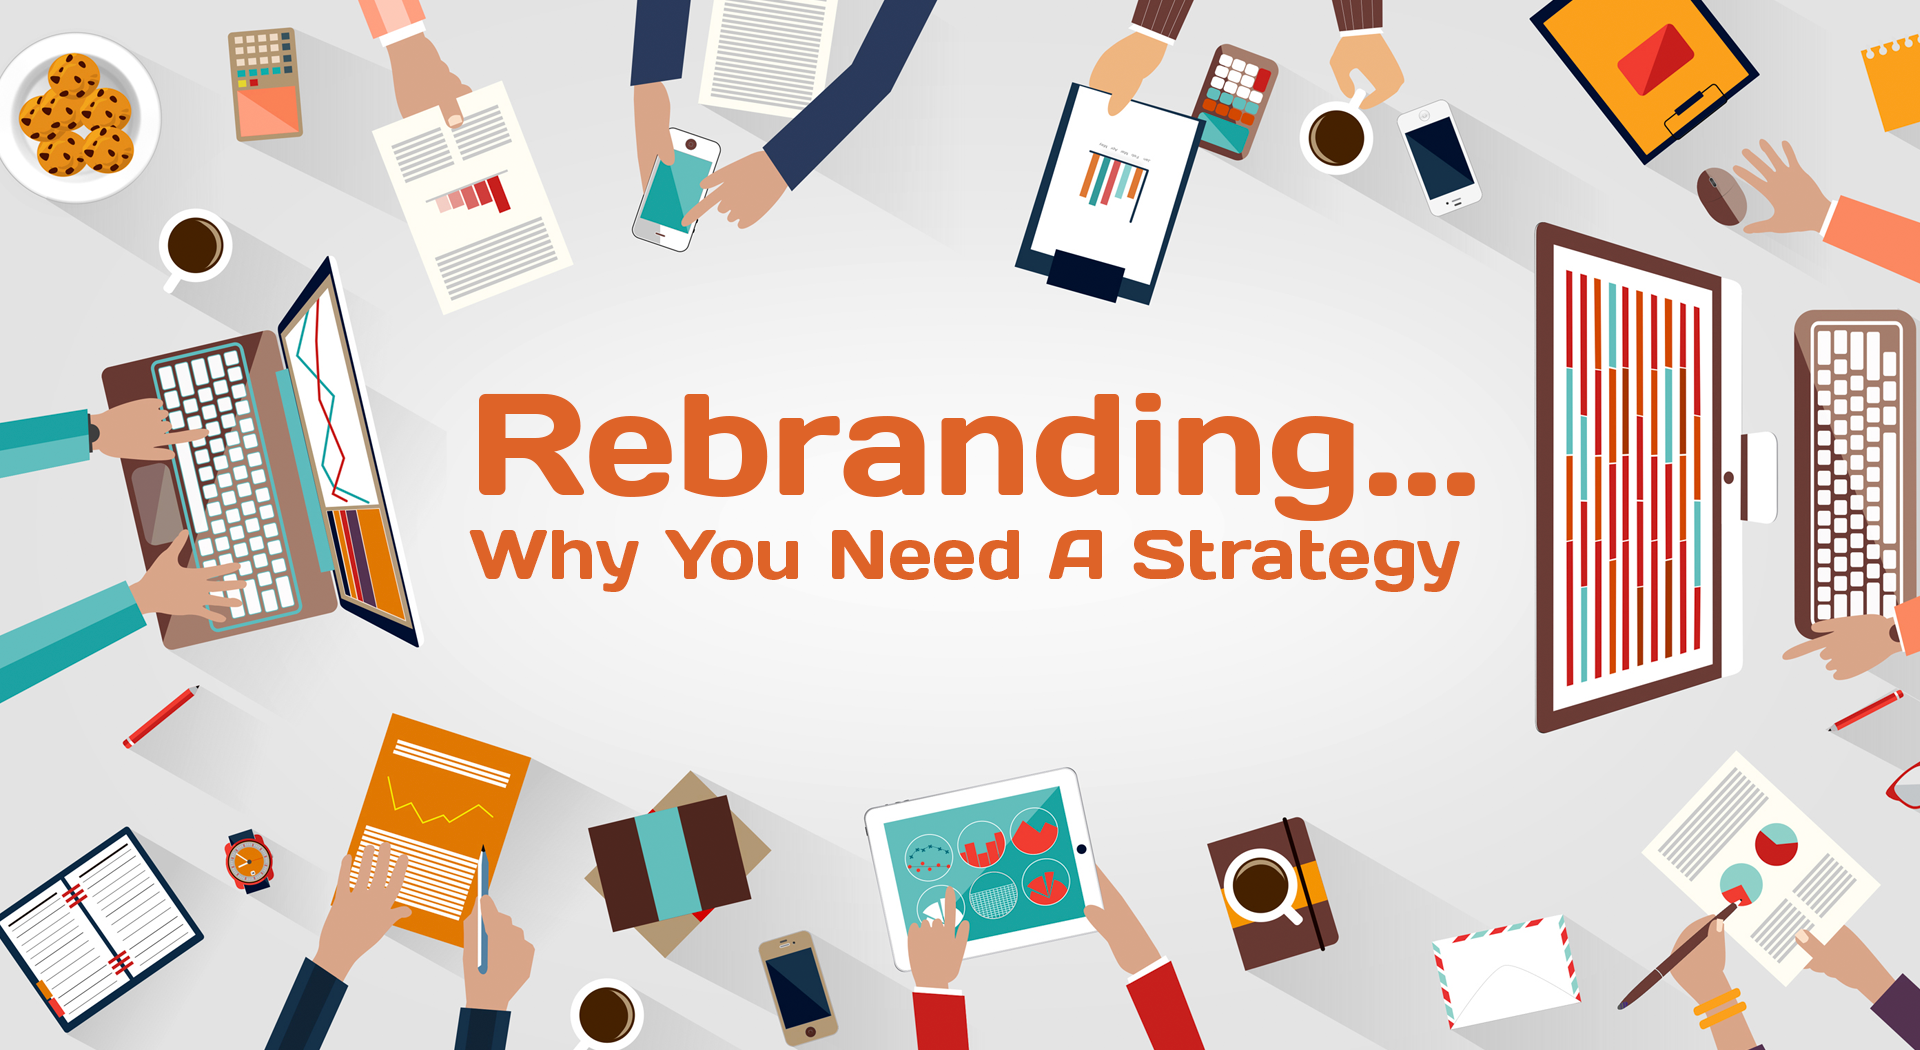 Rebranding - Why you need a strategy